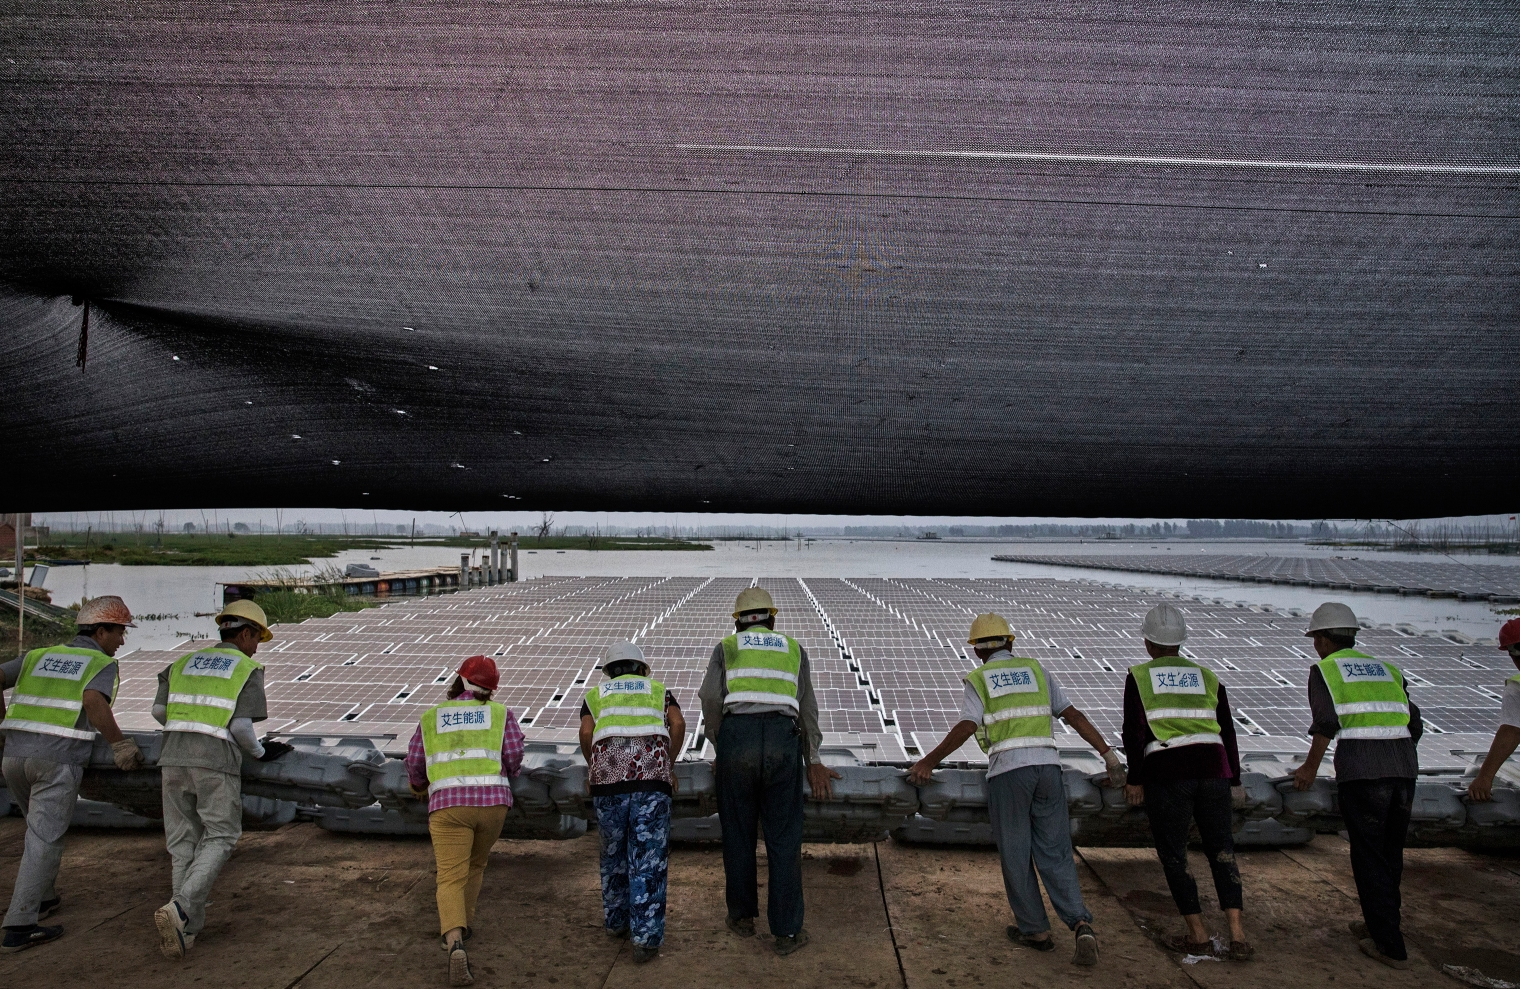 Chinese workers push a section of panels into the water.